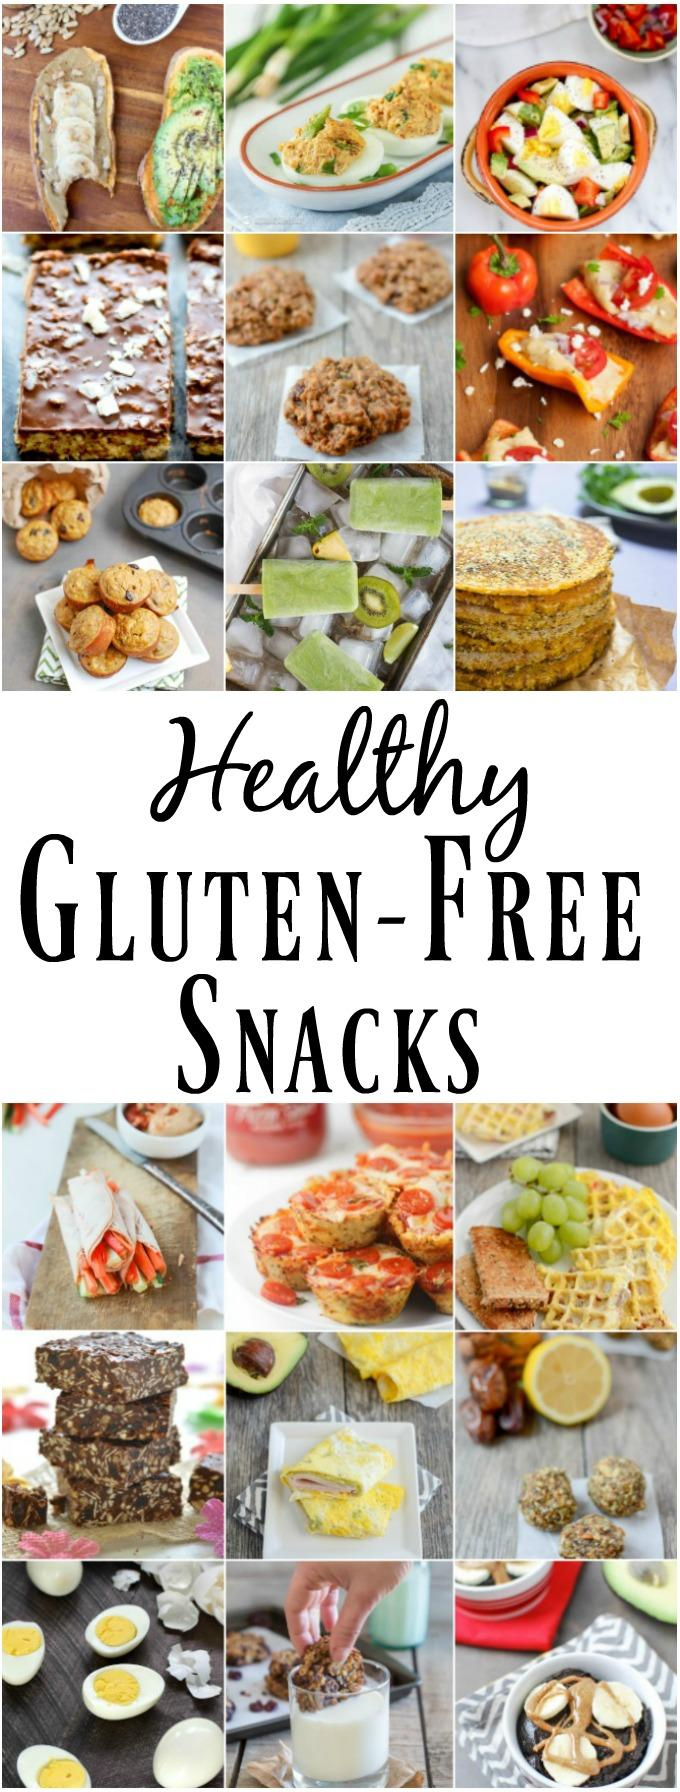 These Healthy Gluten-Free Snacks feature ingredients that are naturally gluten-free like sweet potatoes, eggs, nuts, seeds, fruits and vegetables. The recipes are packed with nutrients and great for adults and kids